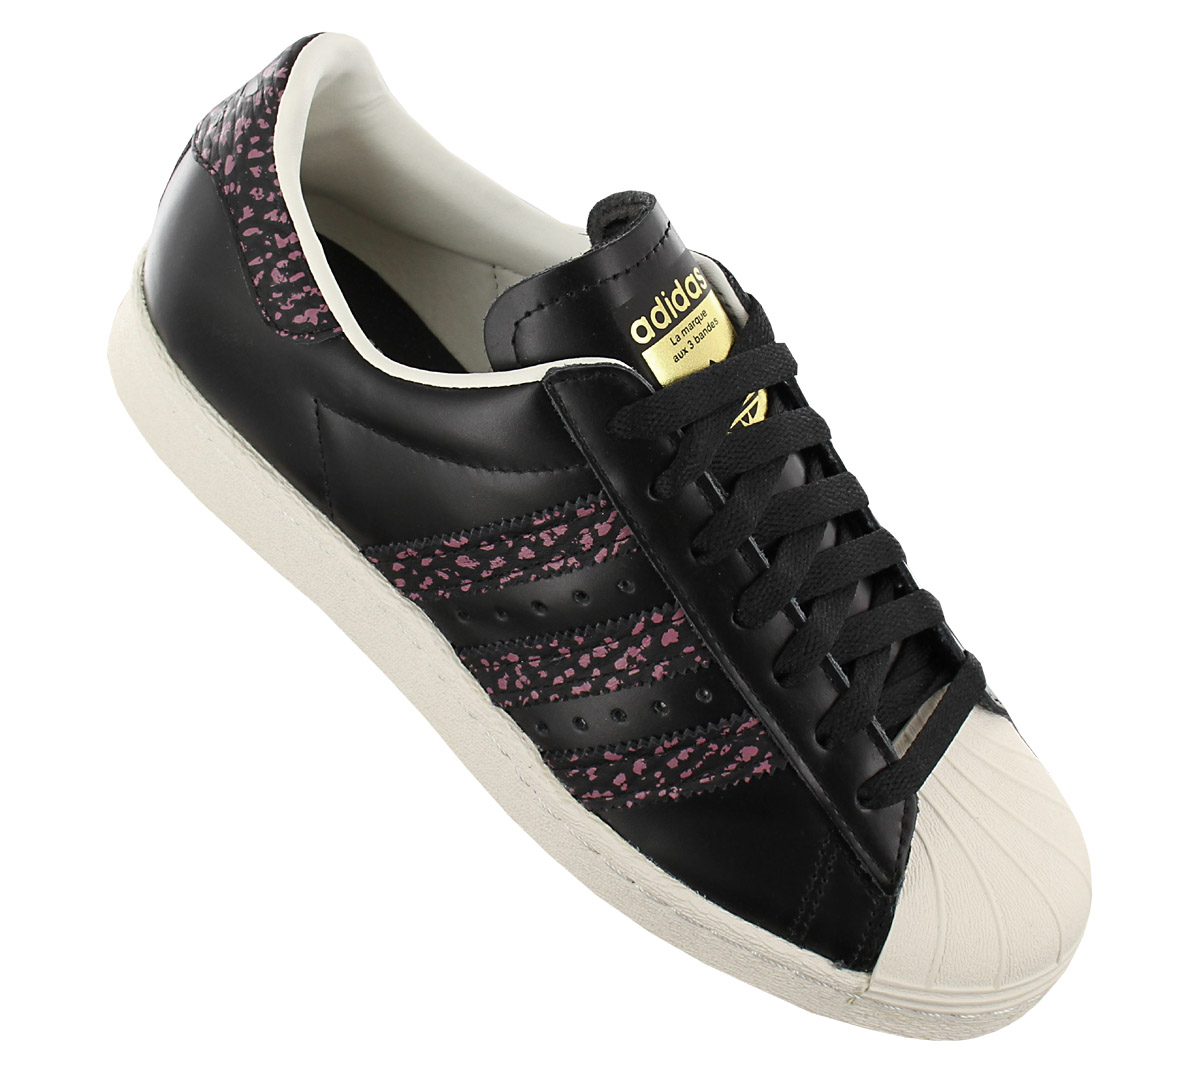 adidas superstar lux>>adidas superstar 80s black